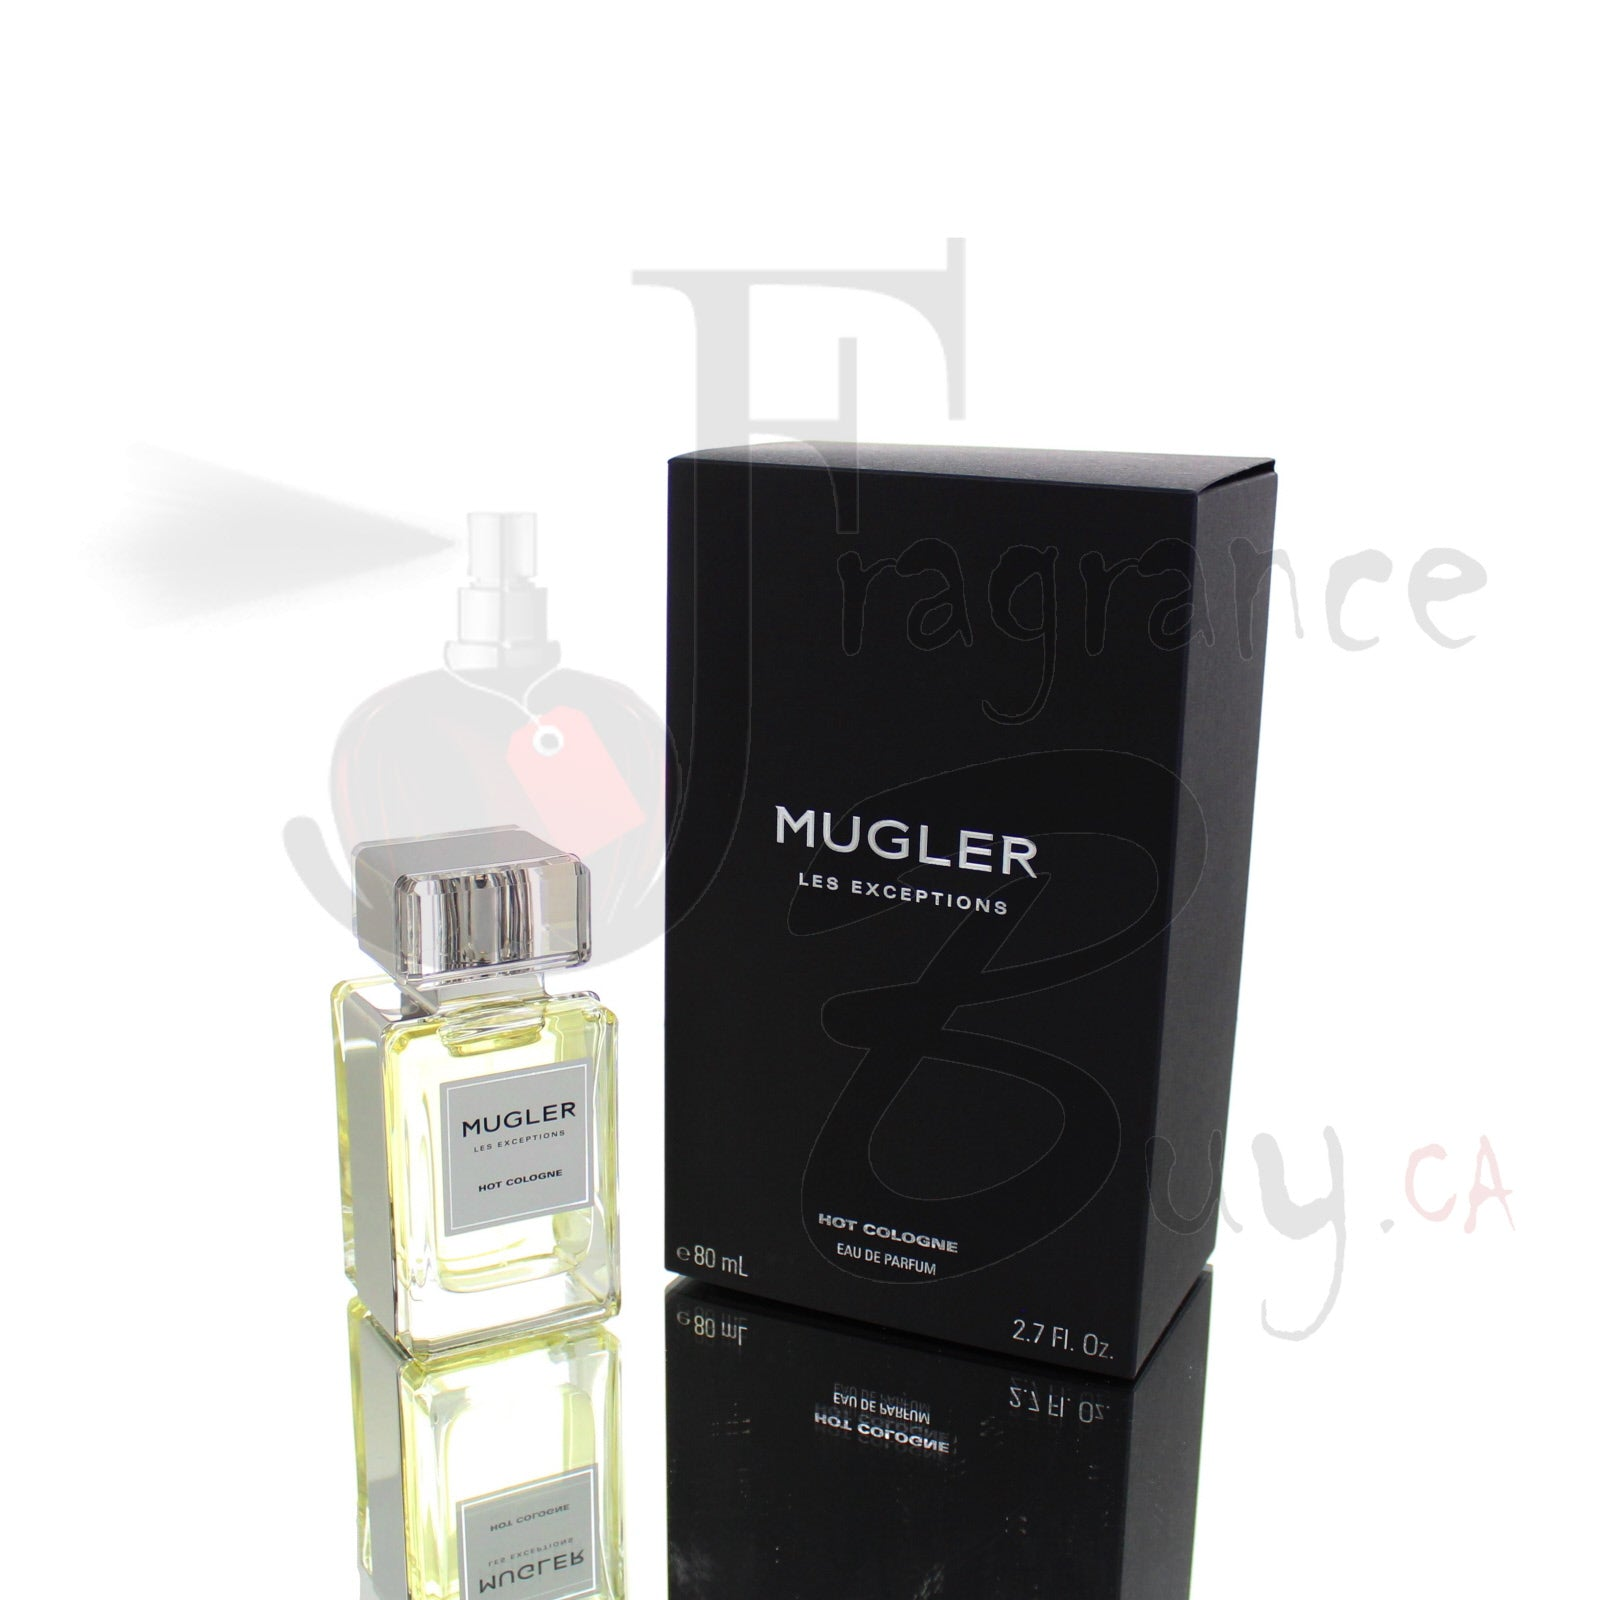 Mugler Hot Cologne Les Exceptions For Man/Woman